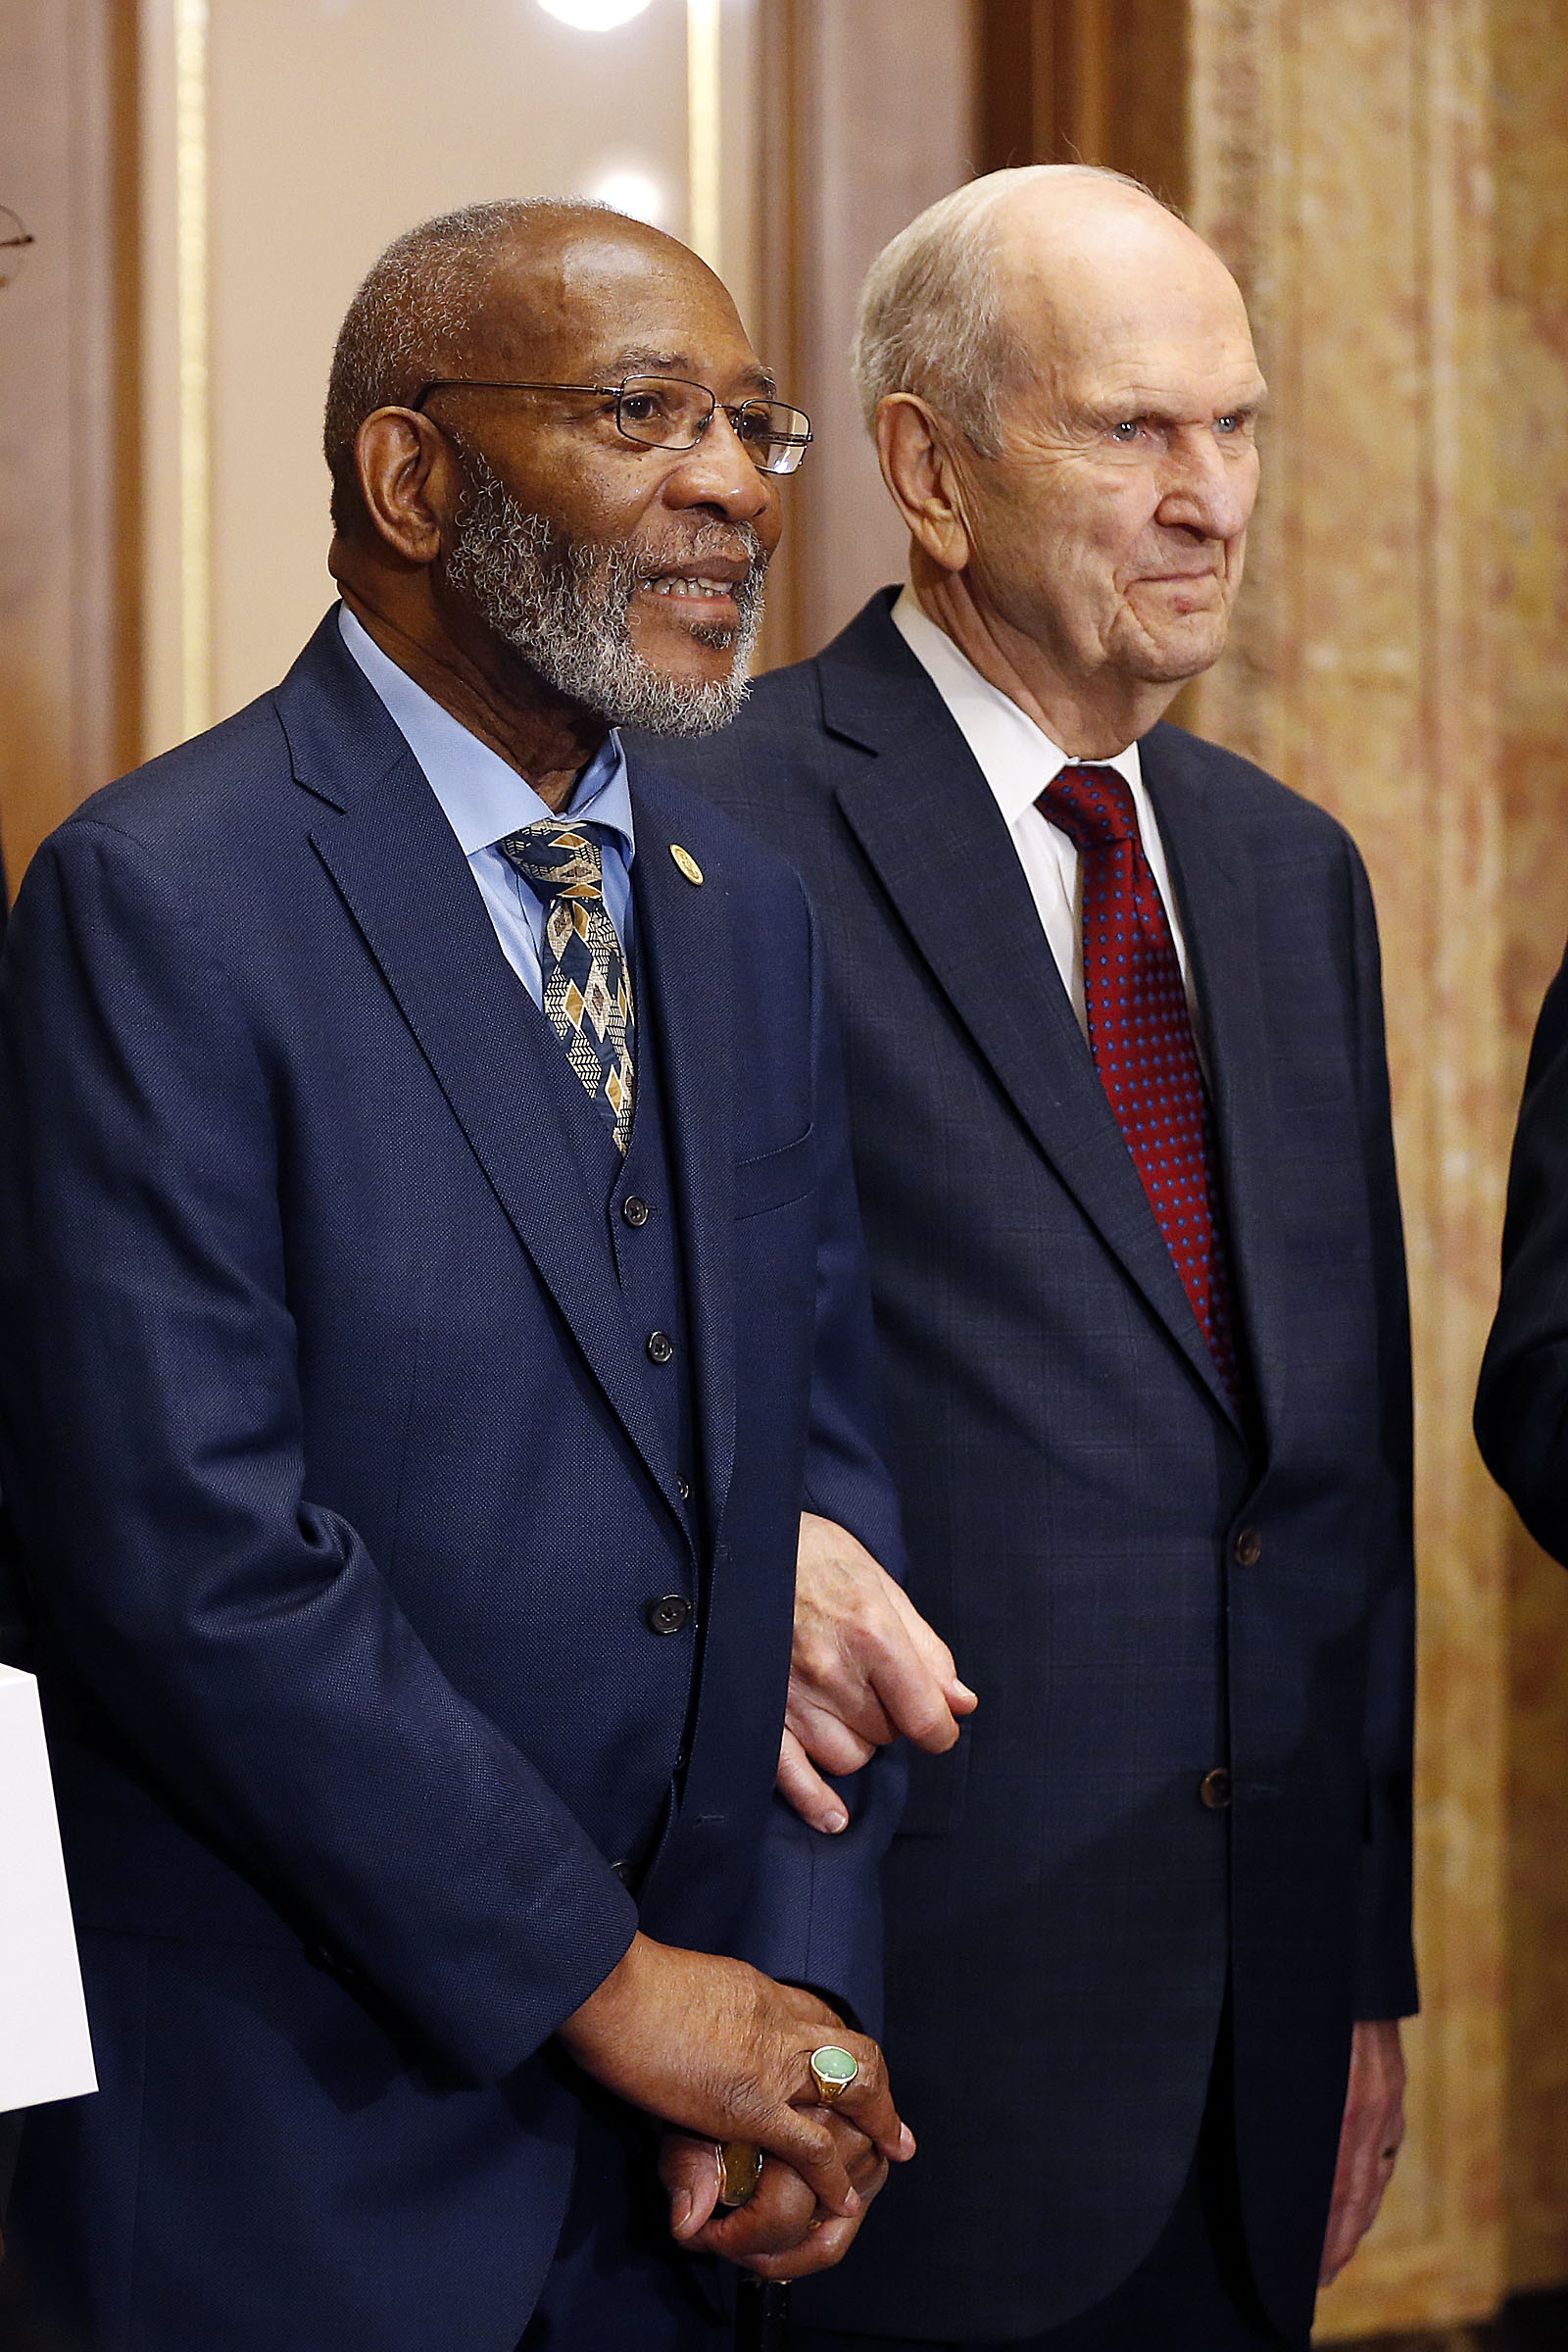 President Russell M. Nelson of The Church of Jesus Christ of Latter-day Saints, right, stands with Rev. Amos C. Brown during a press conference in Salt Lake City on Thursday, May 17, 2018.